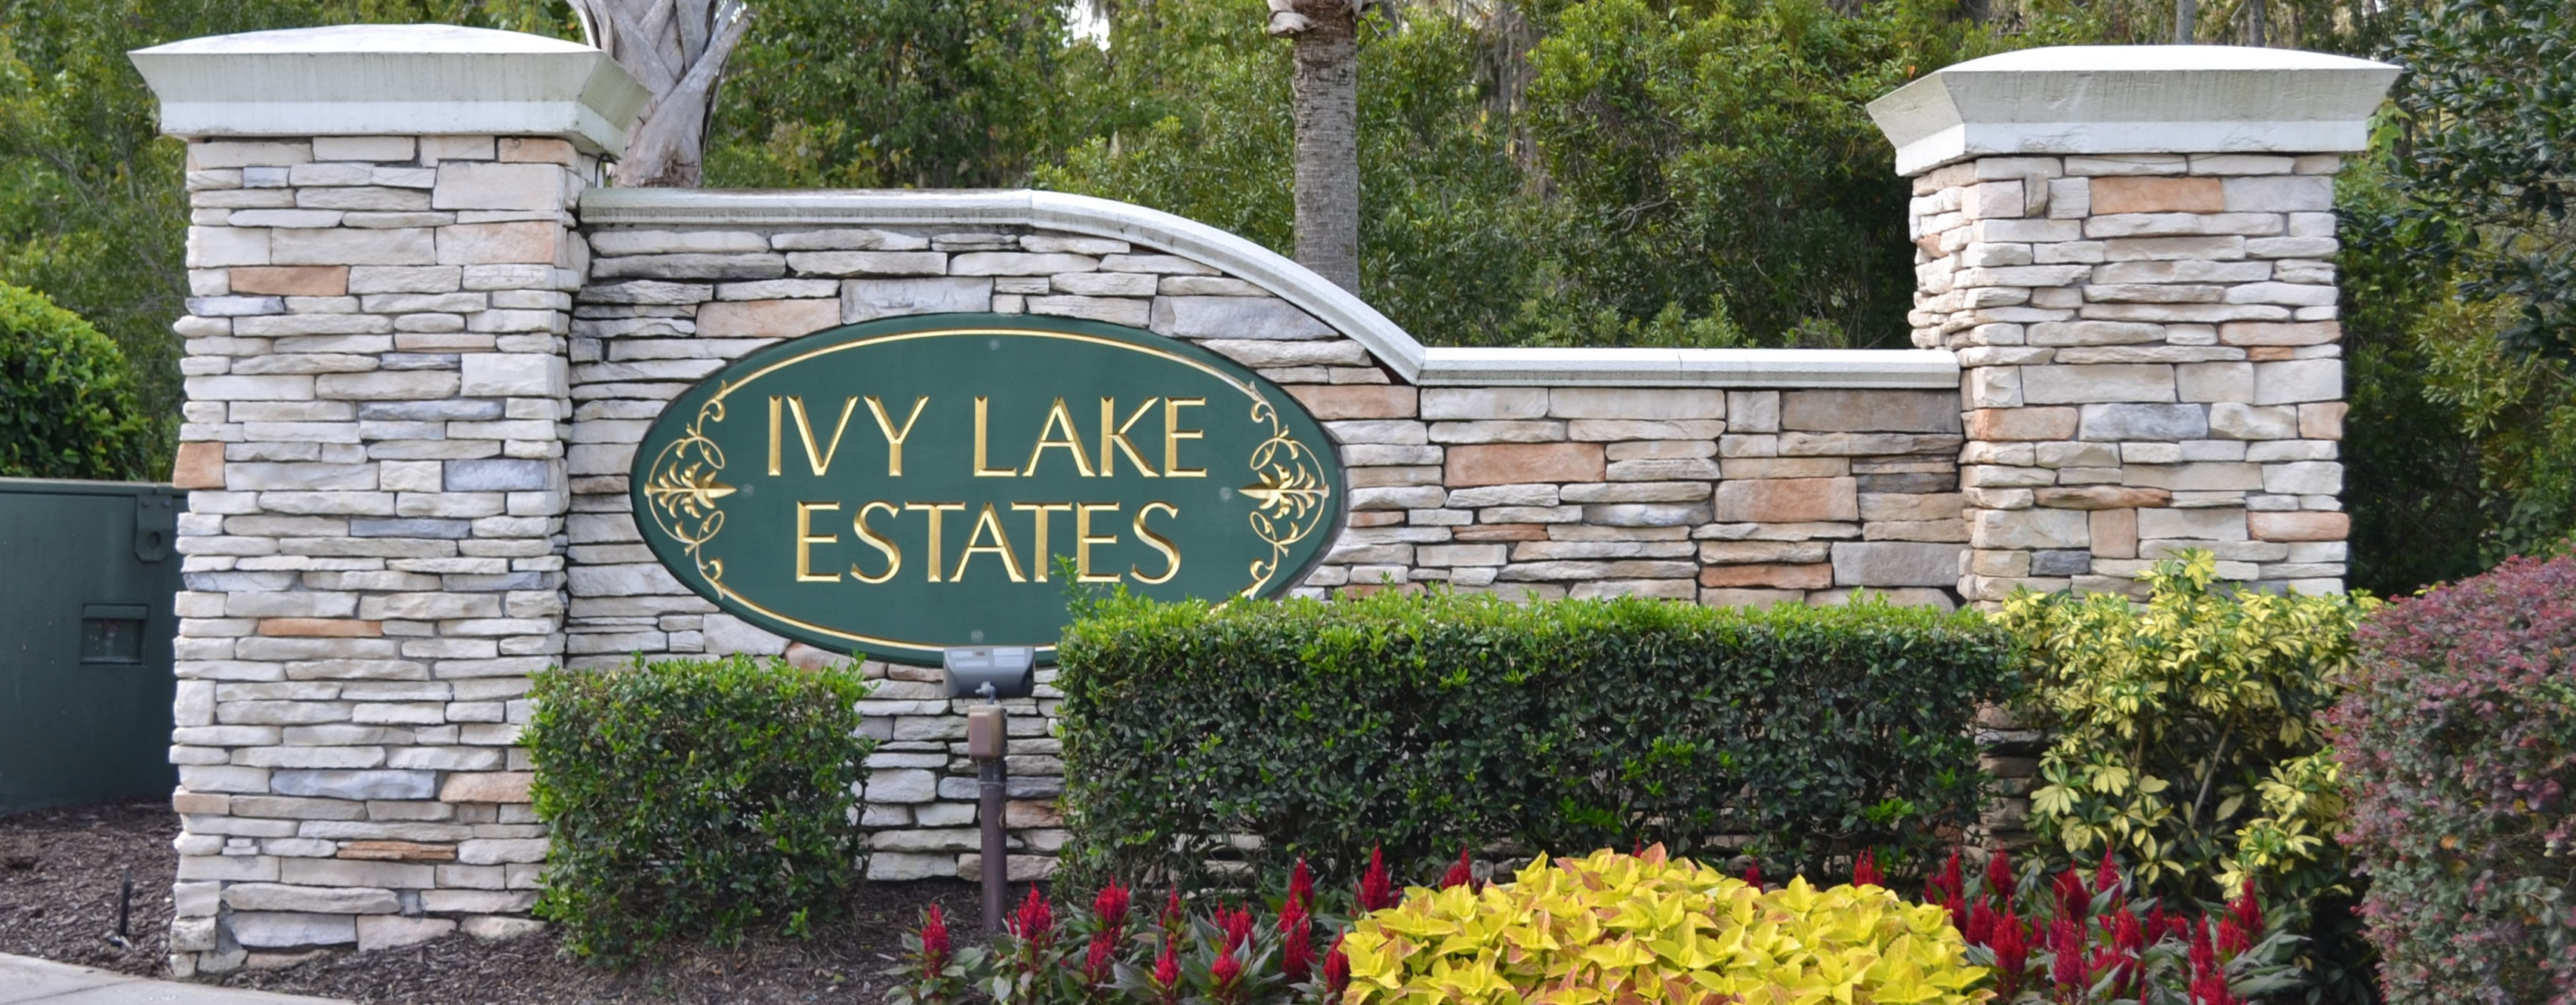 Ivy Lakes Estates entry sign